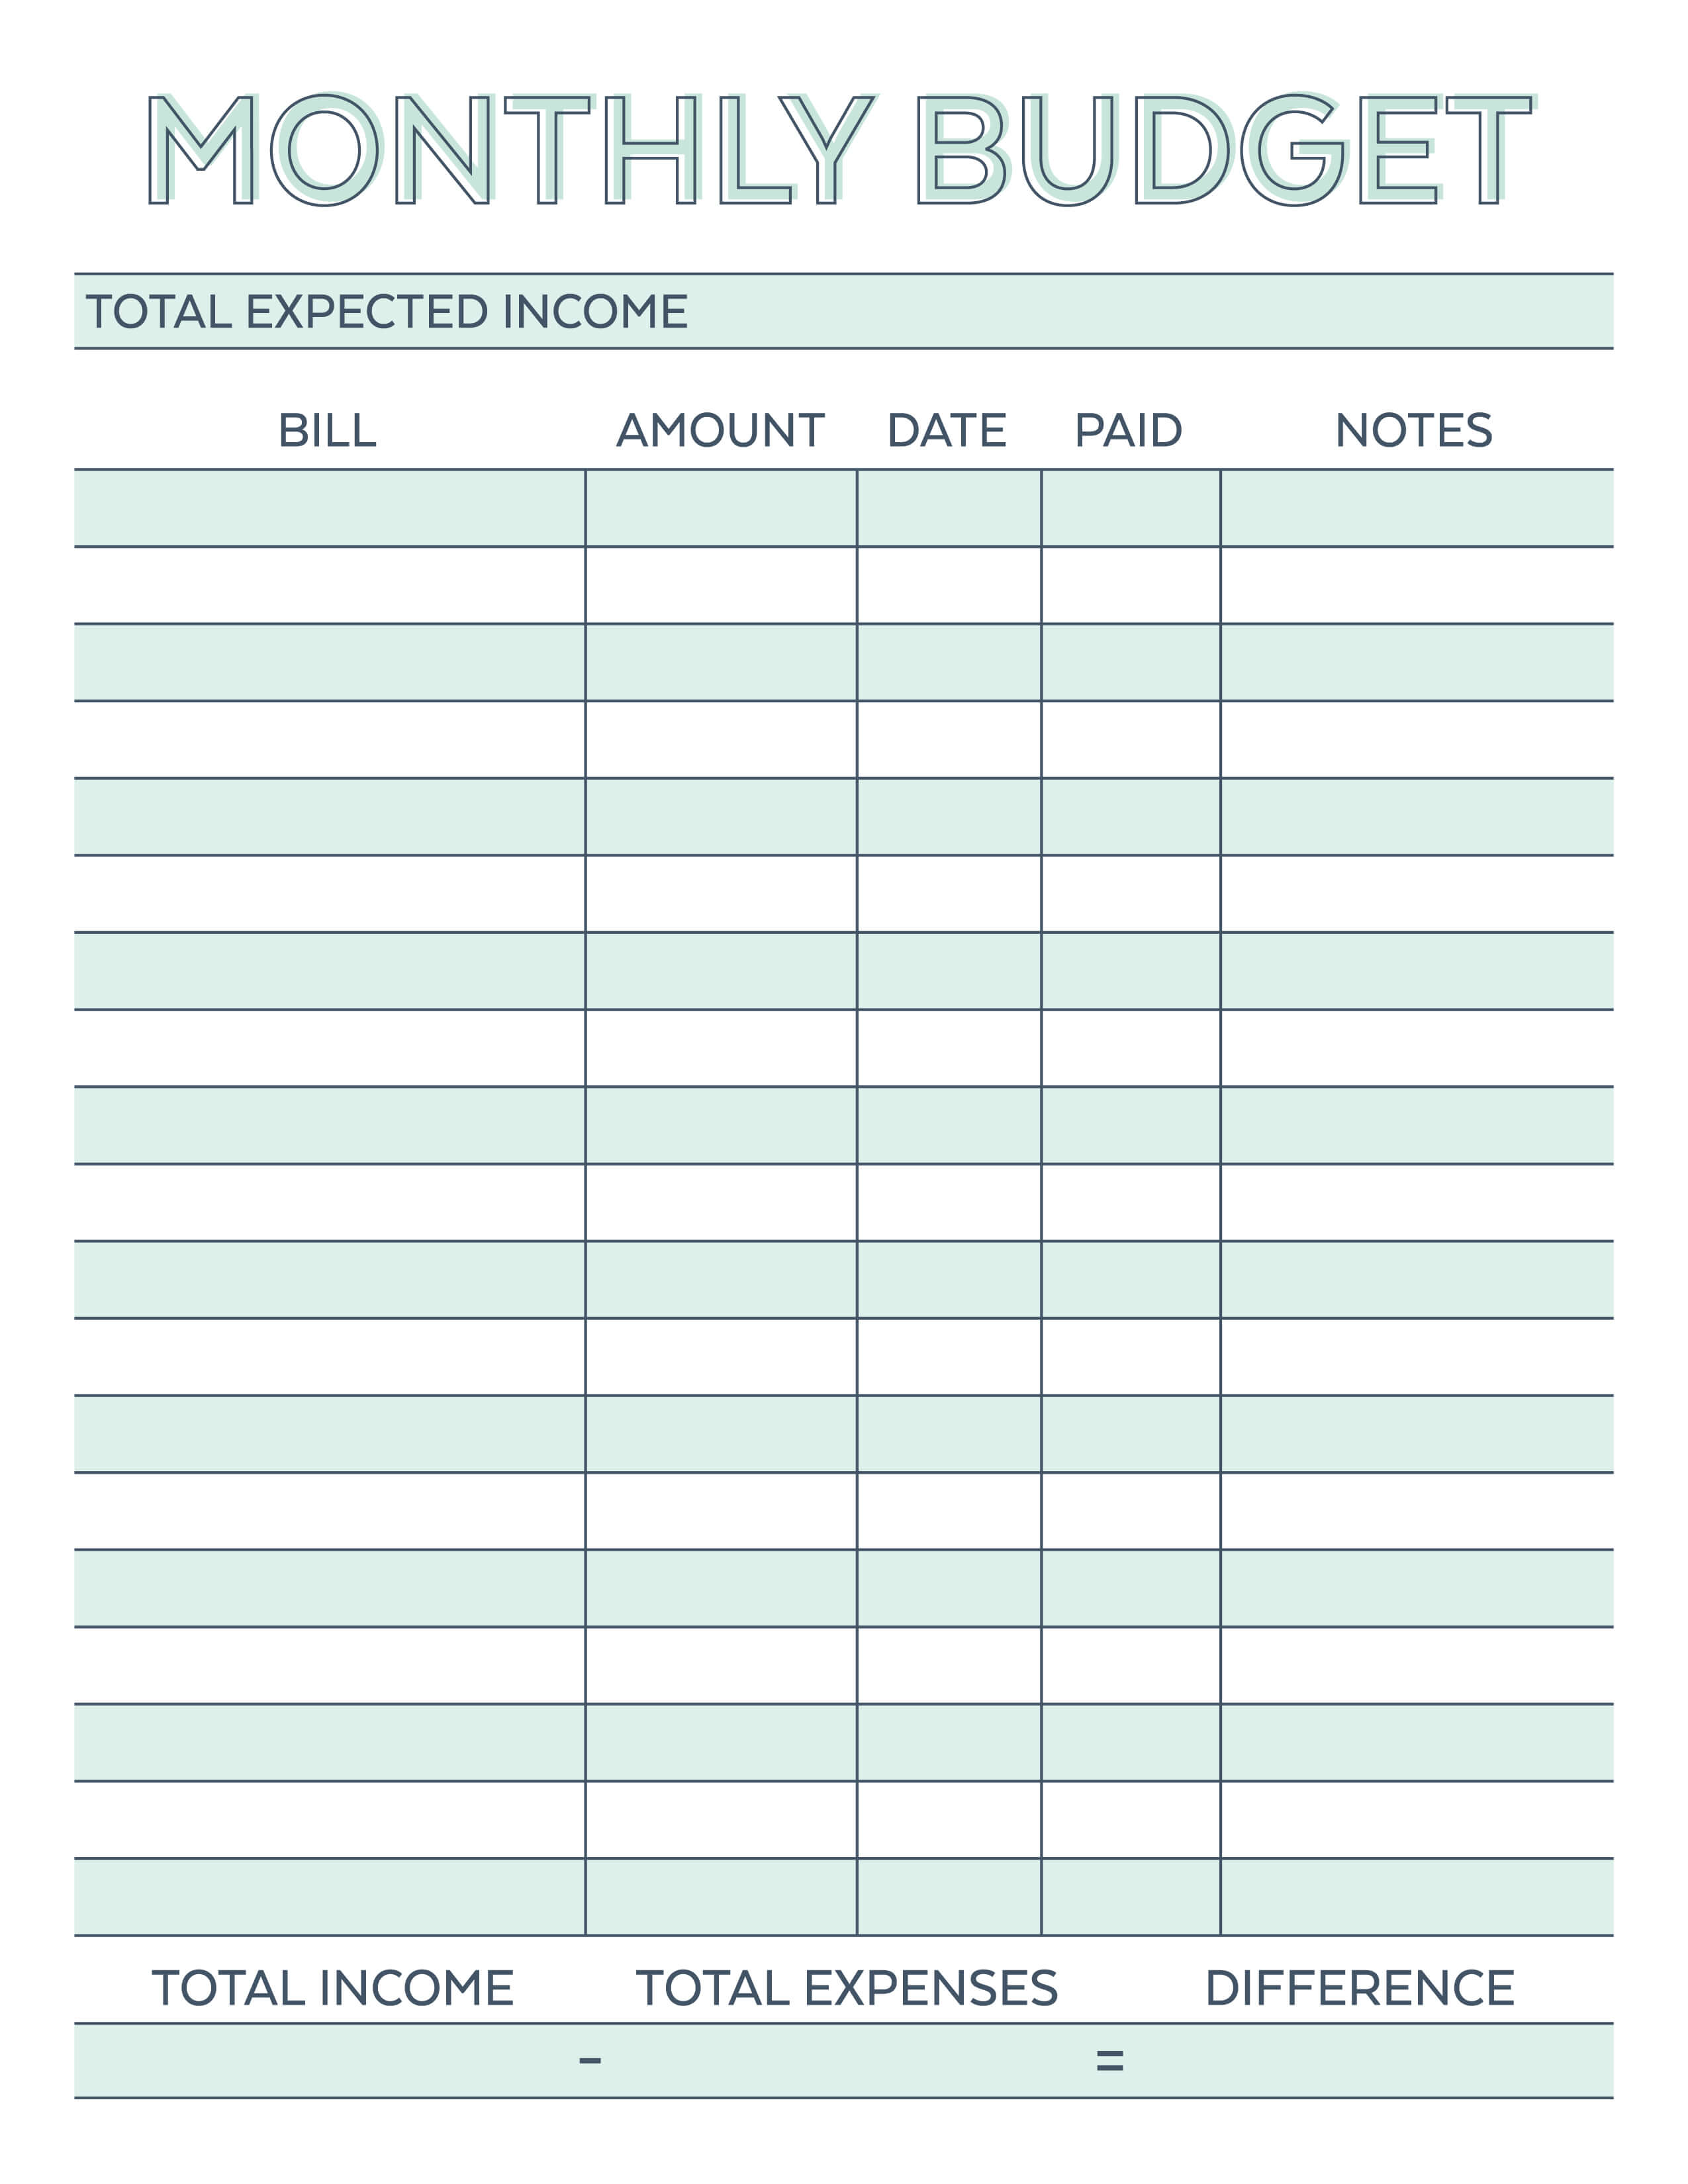 Monthly Budget Planner Free Printable Worksheet